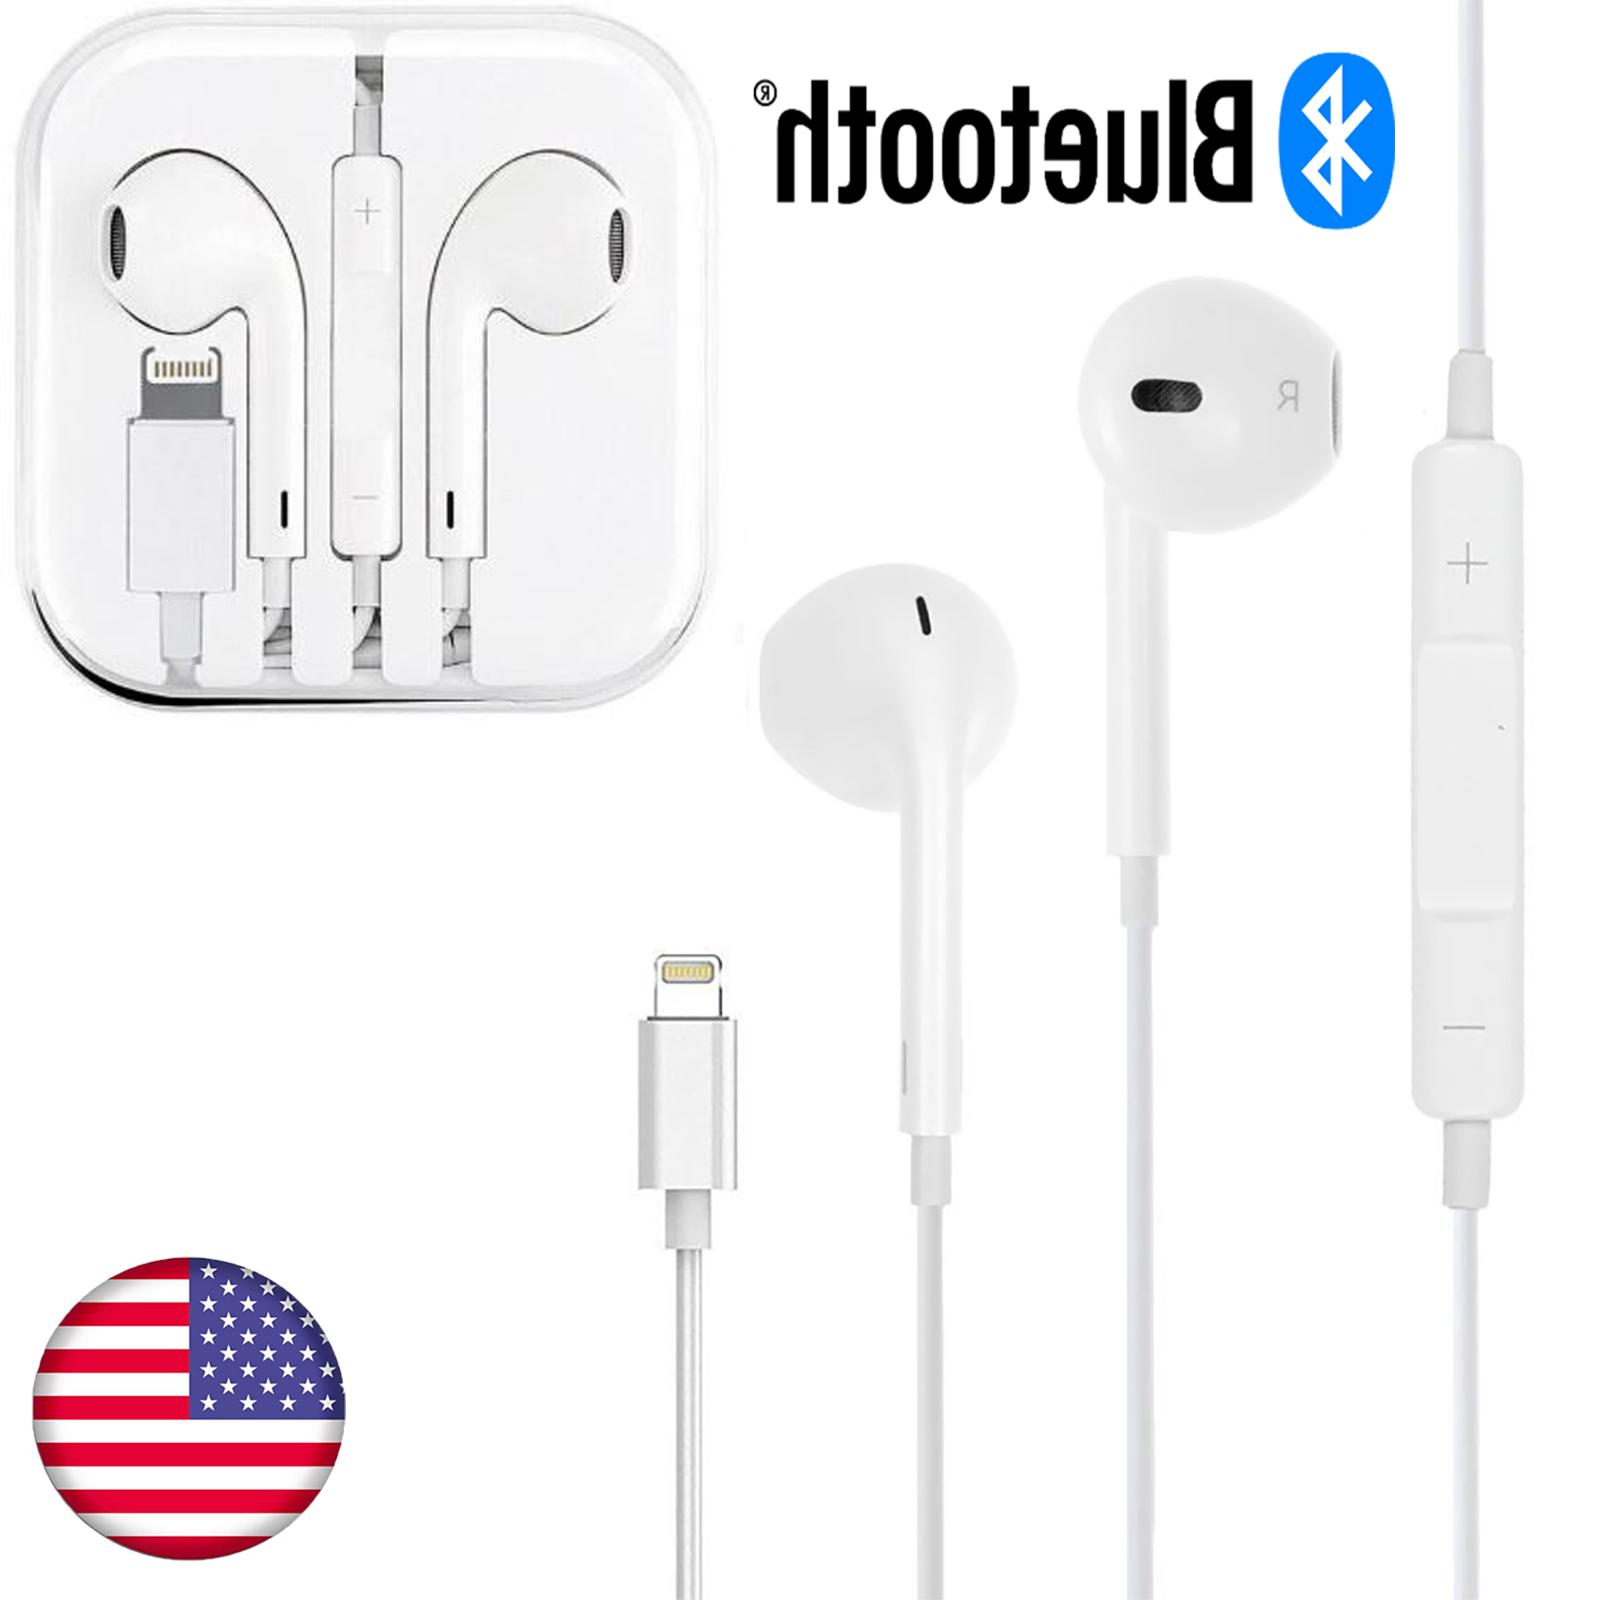 oem quality headphones bluetooth earbuds headsets